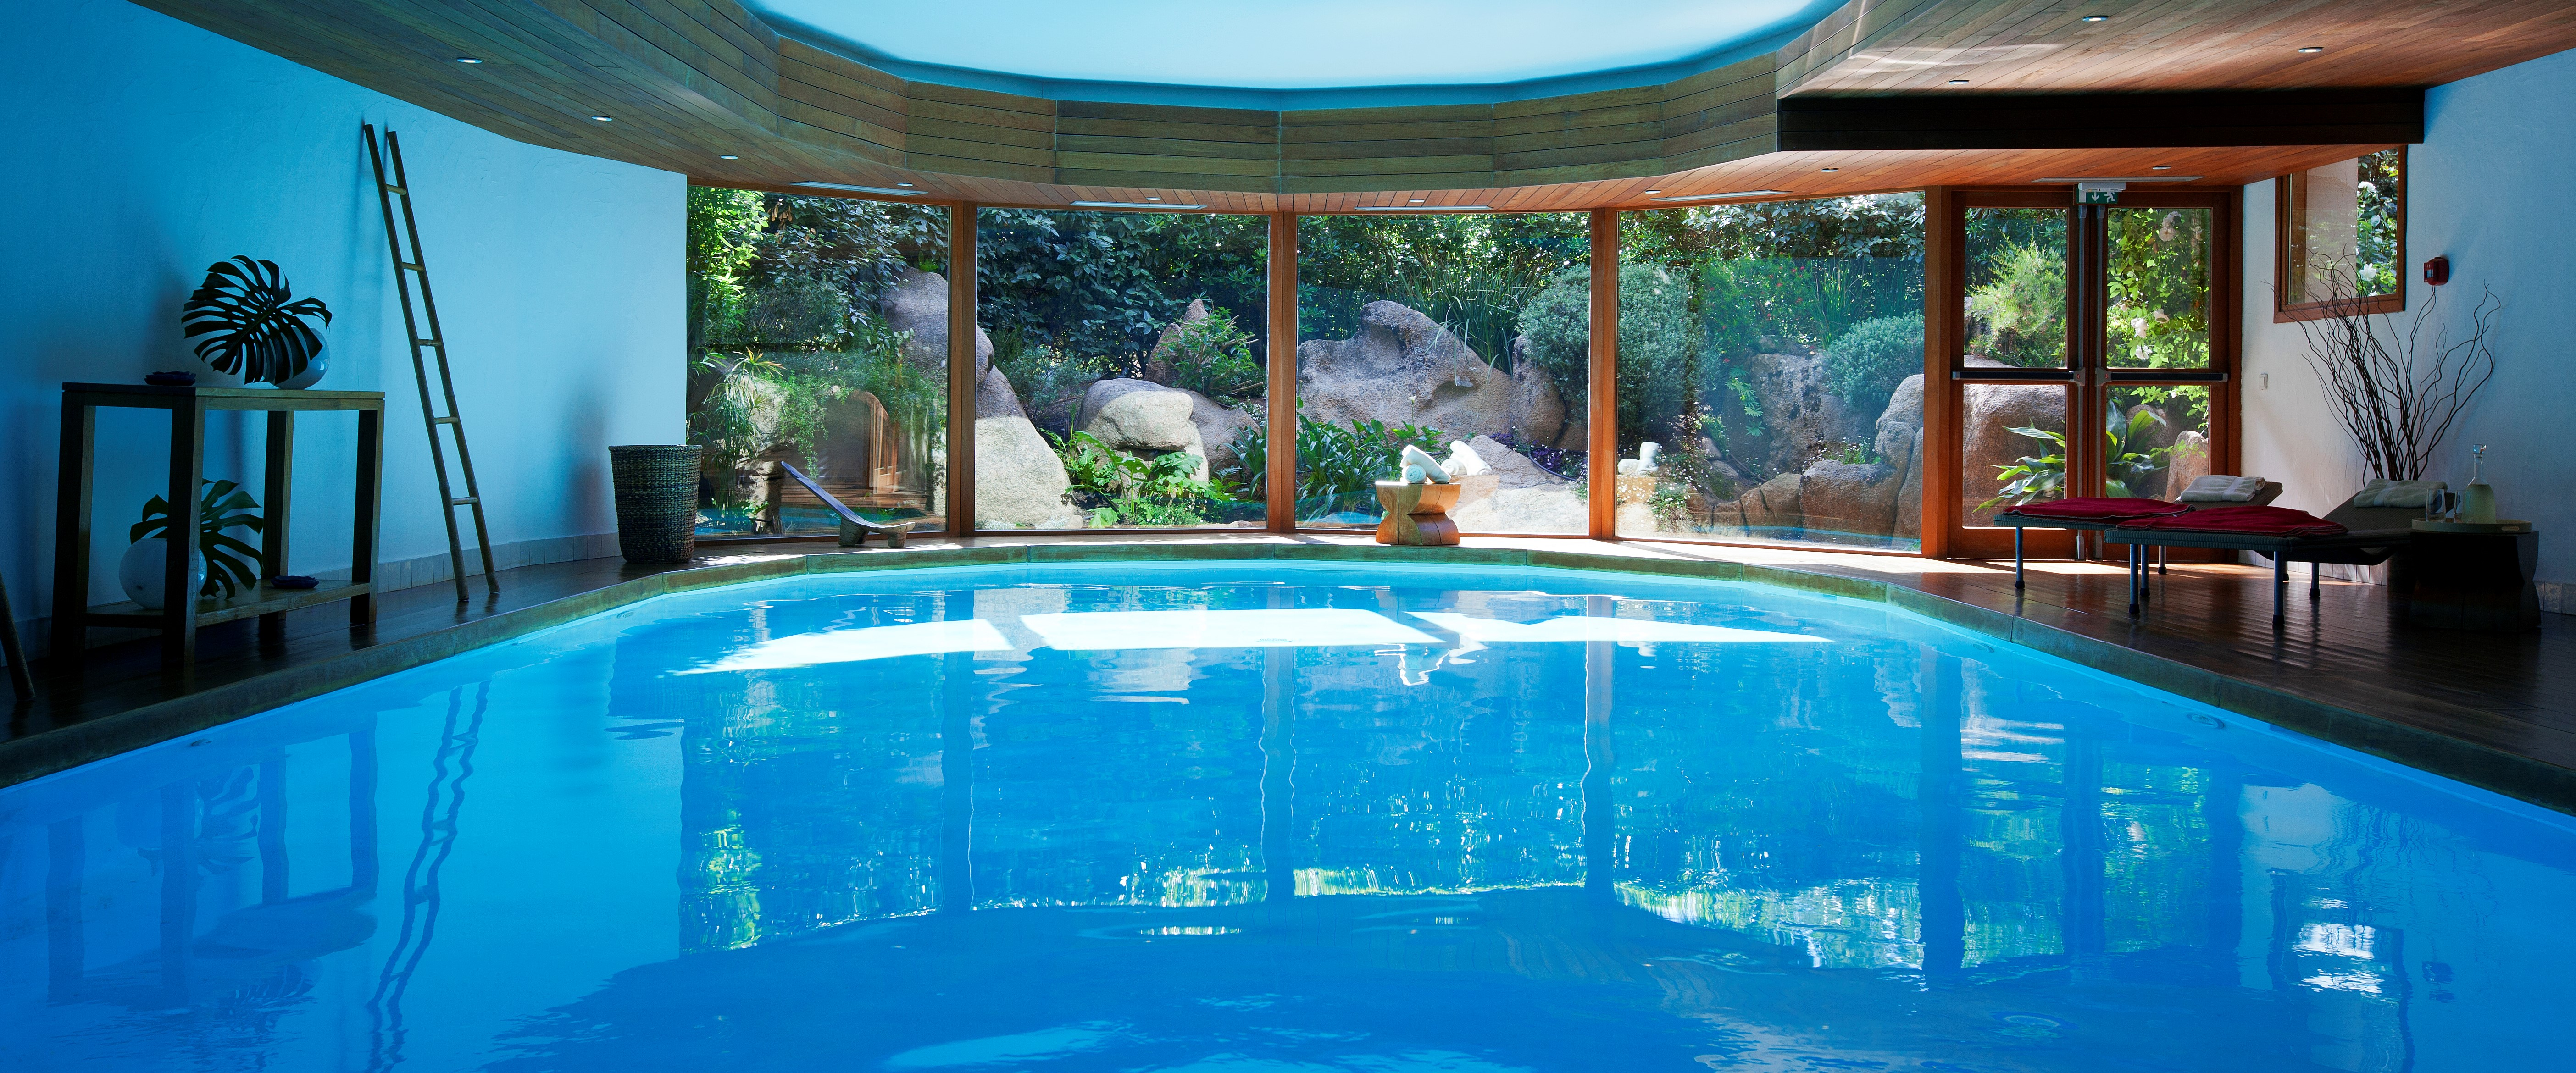 spa-pool-grand-hotel-de-cala-rossa